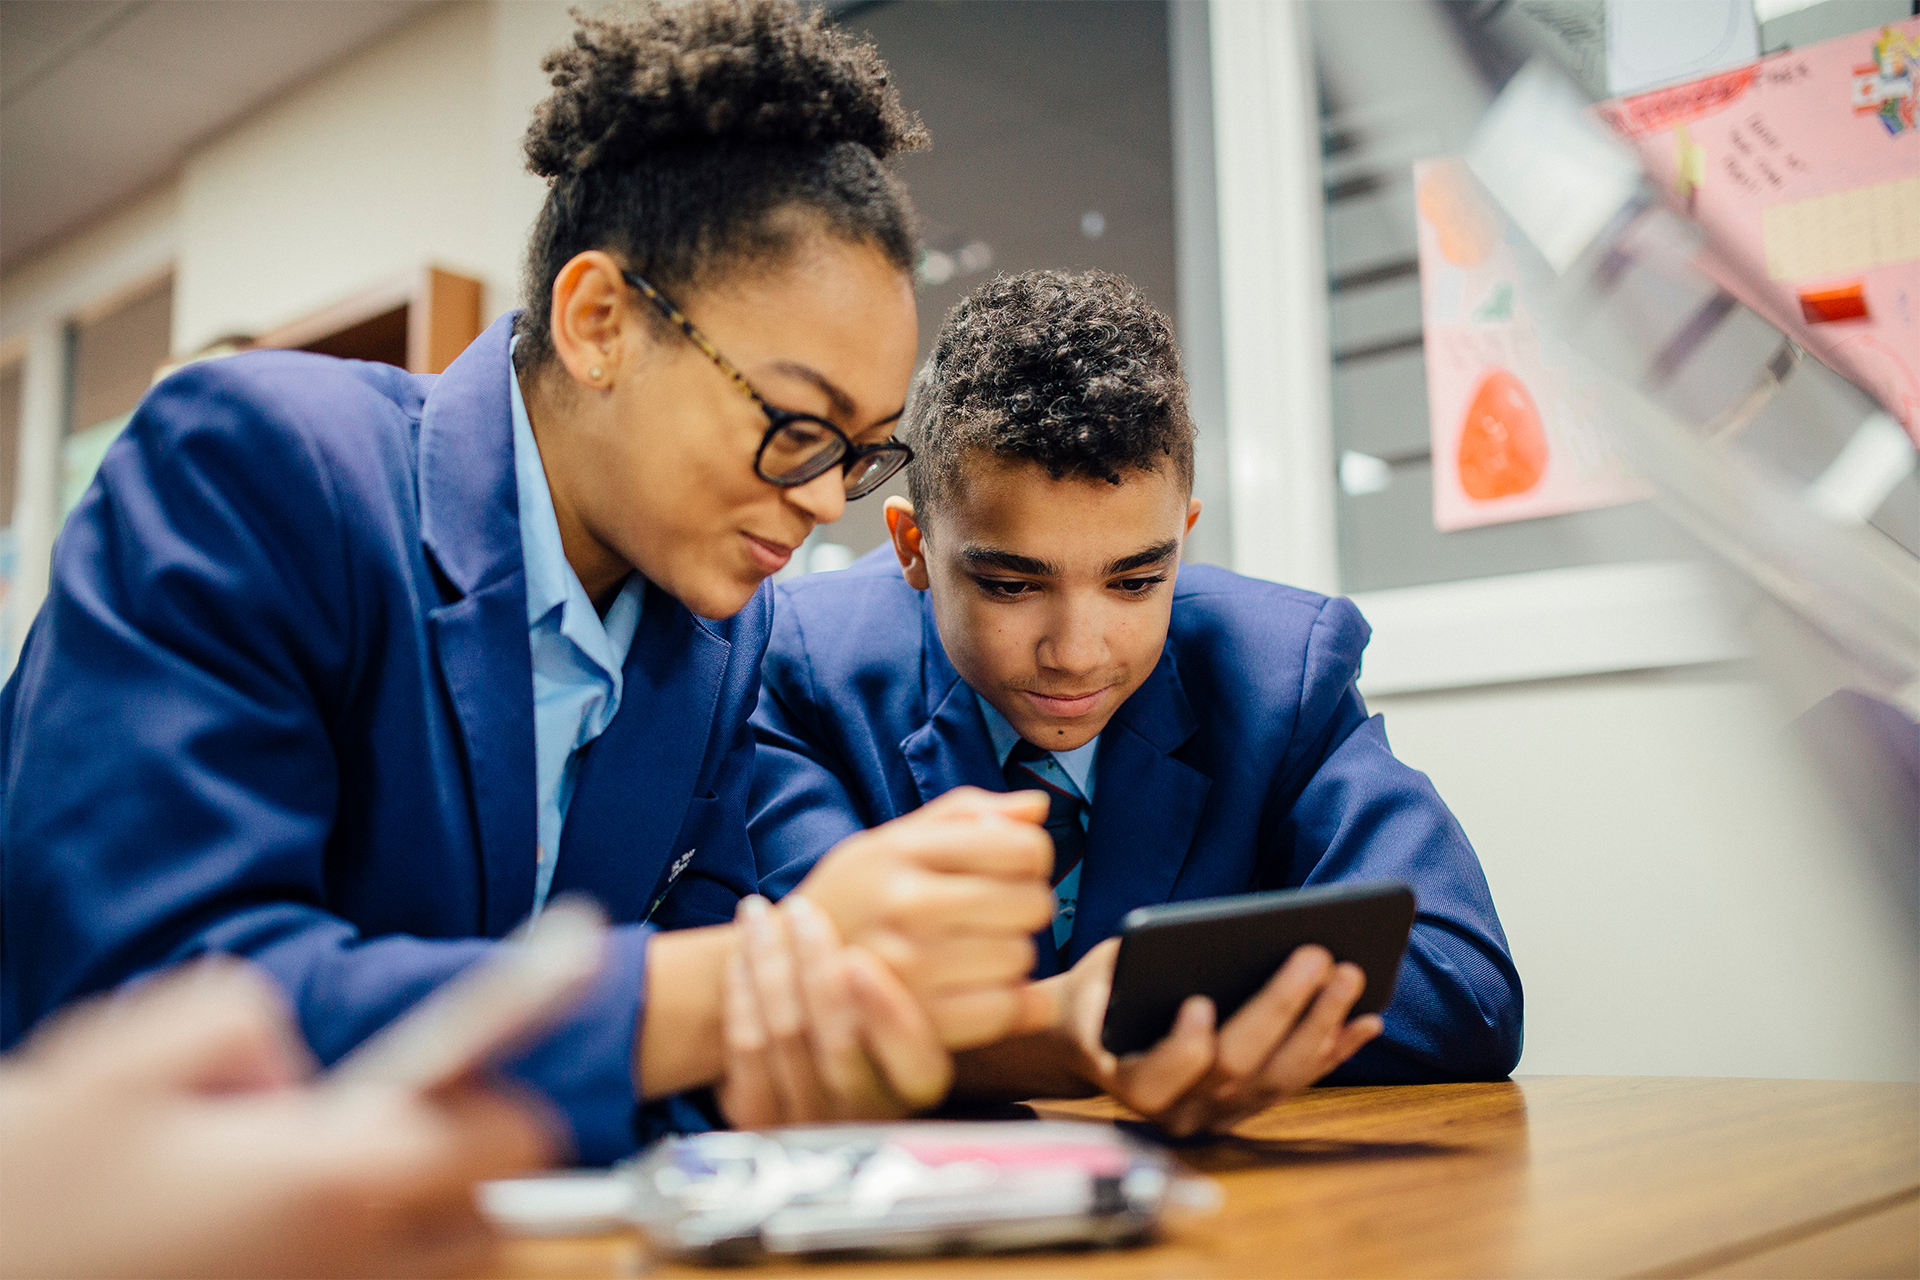 IT safeguarding in schools - and how data privacy can actually work against you